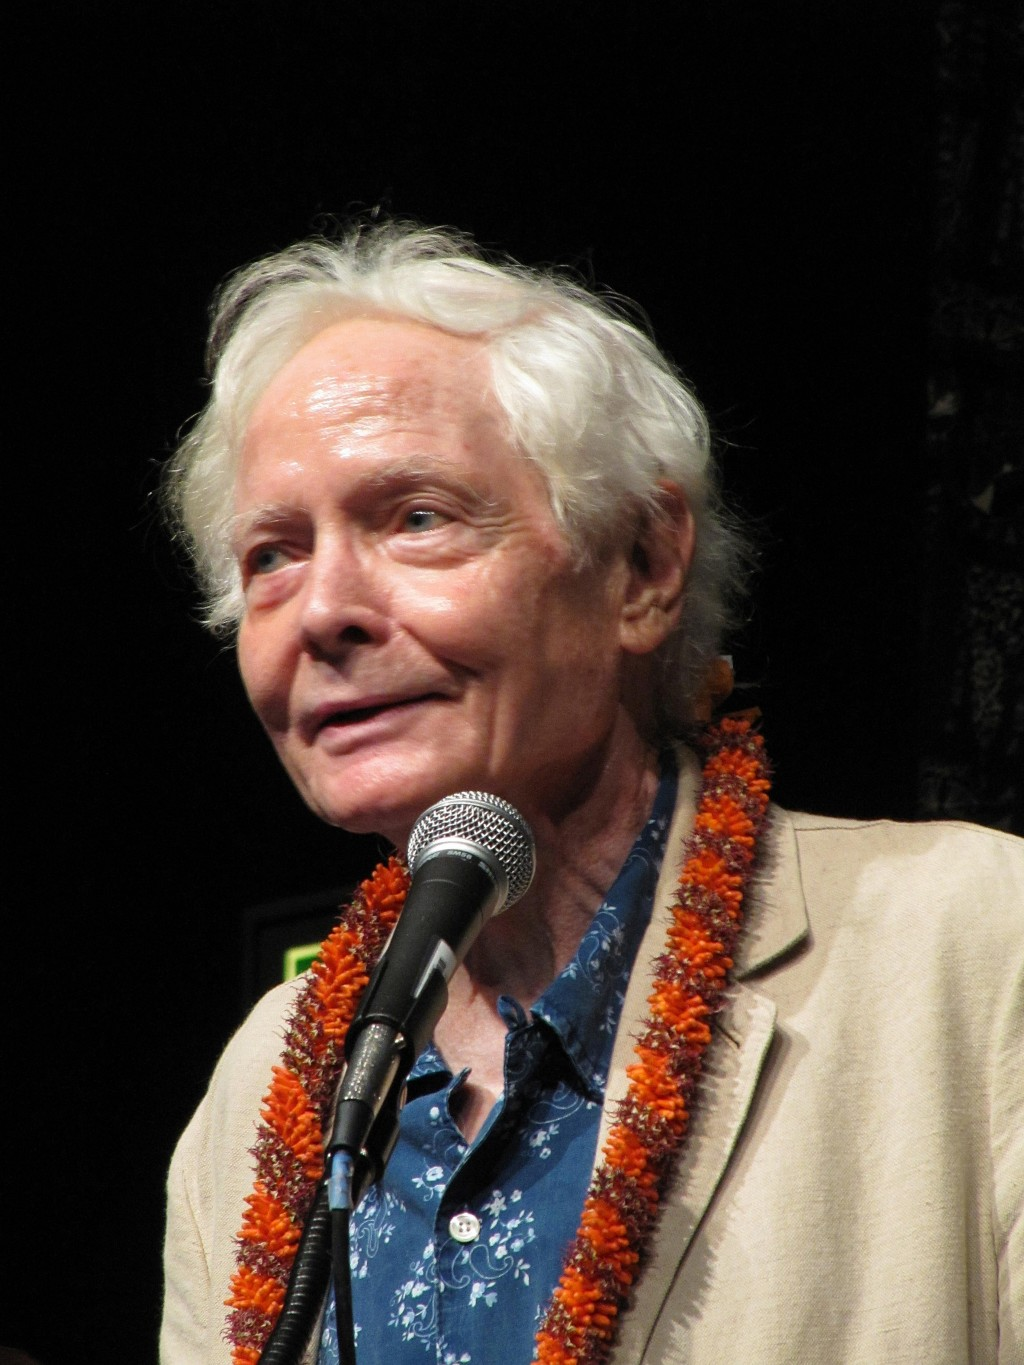 FILE - In this Aug. 2, 2011 file photo, poet W.S. Merwin speaks to the Hawaii Conservation Conference in Honolulu. Merwin, a prolific and versatile ma